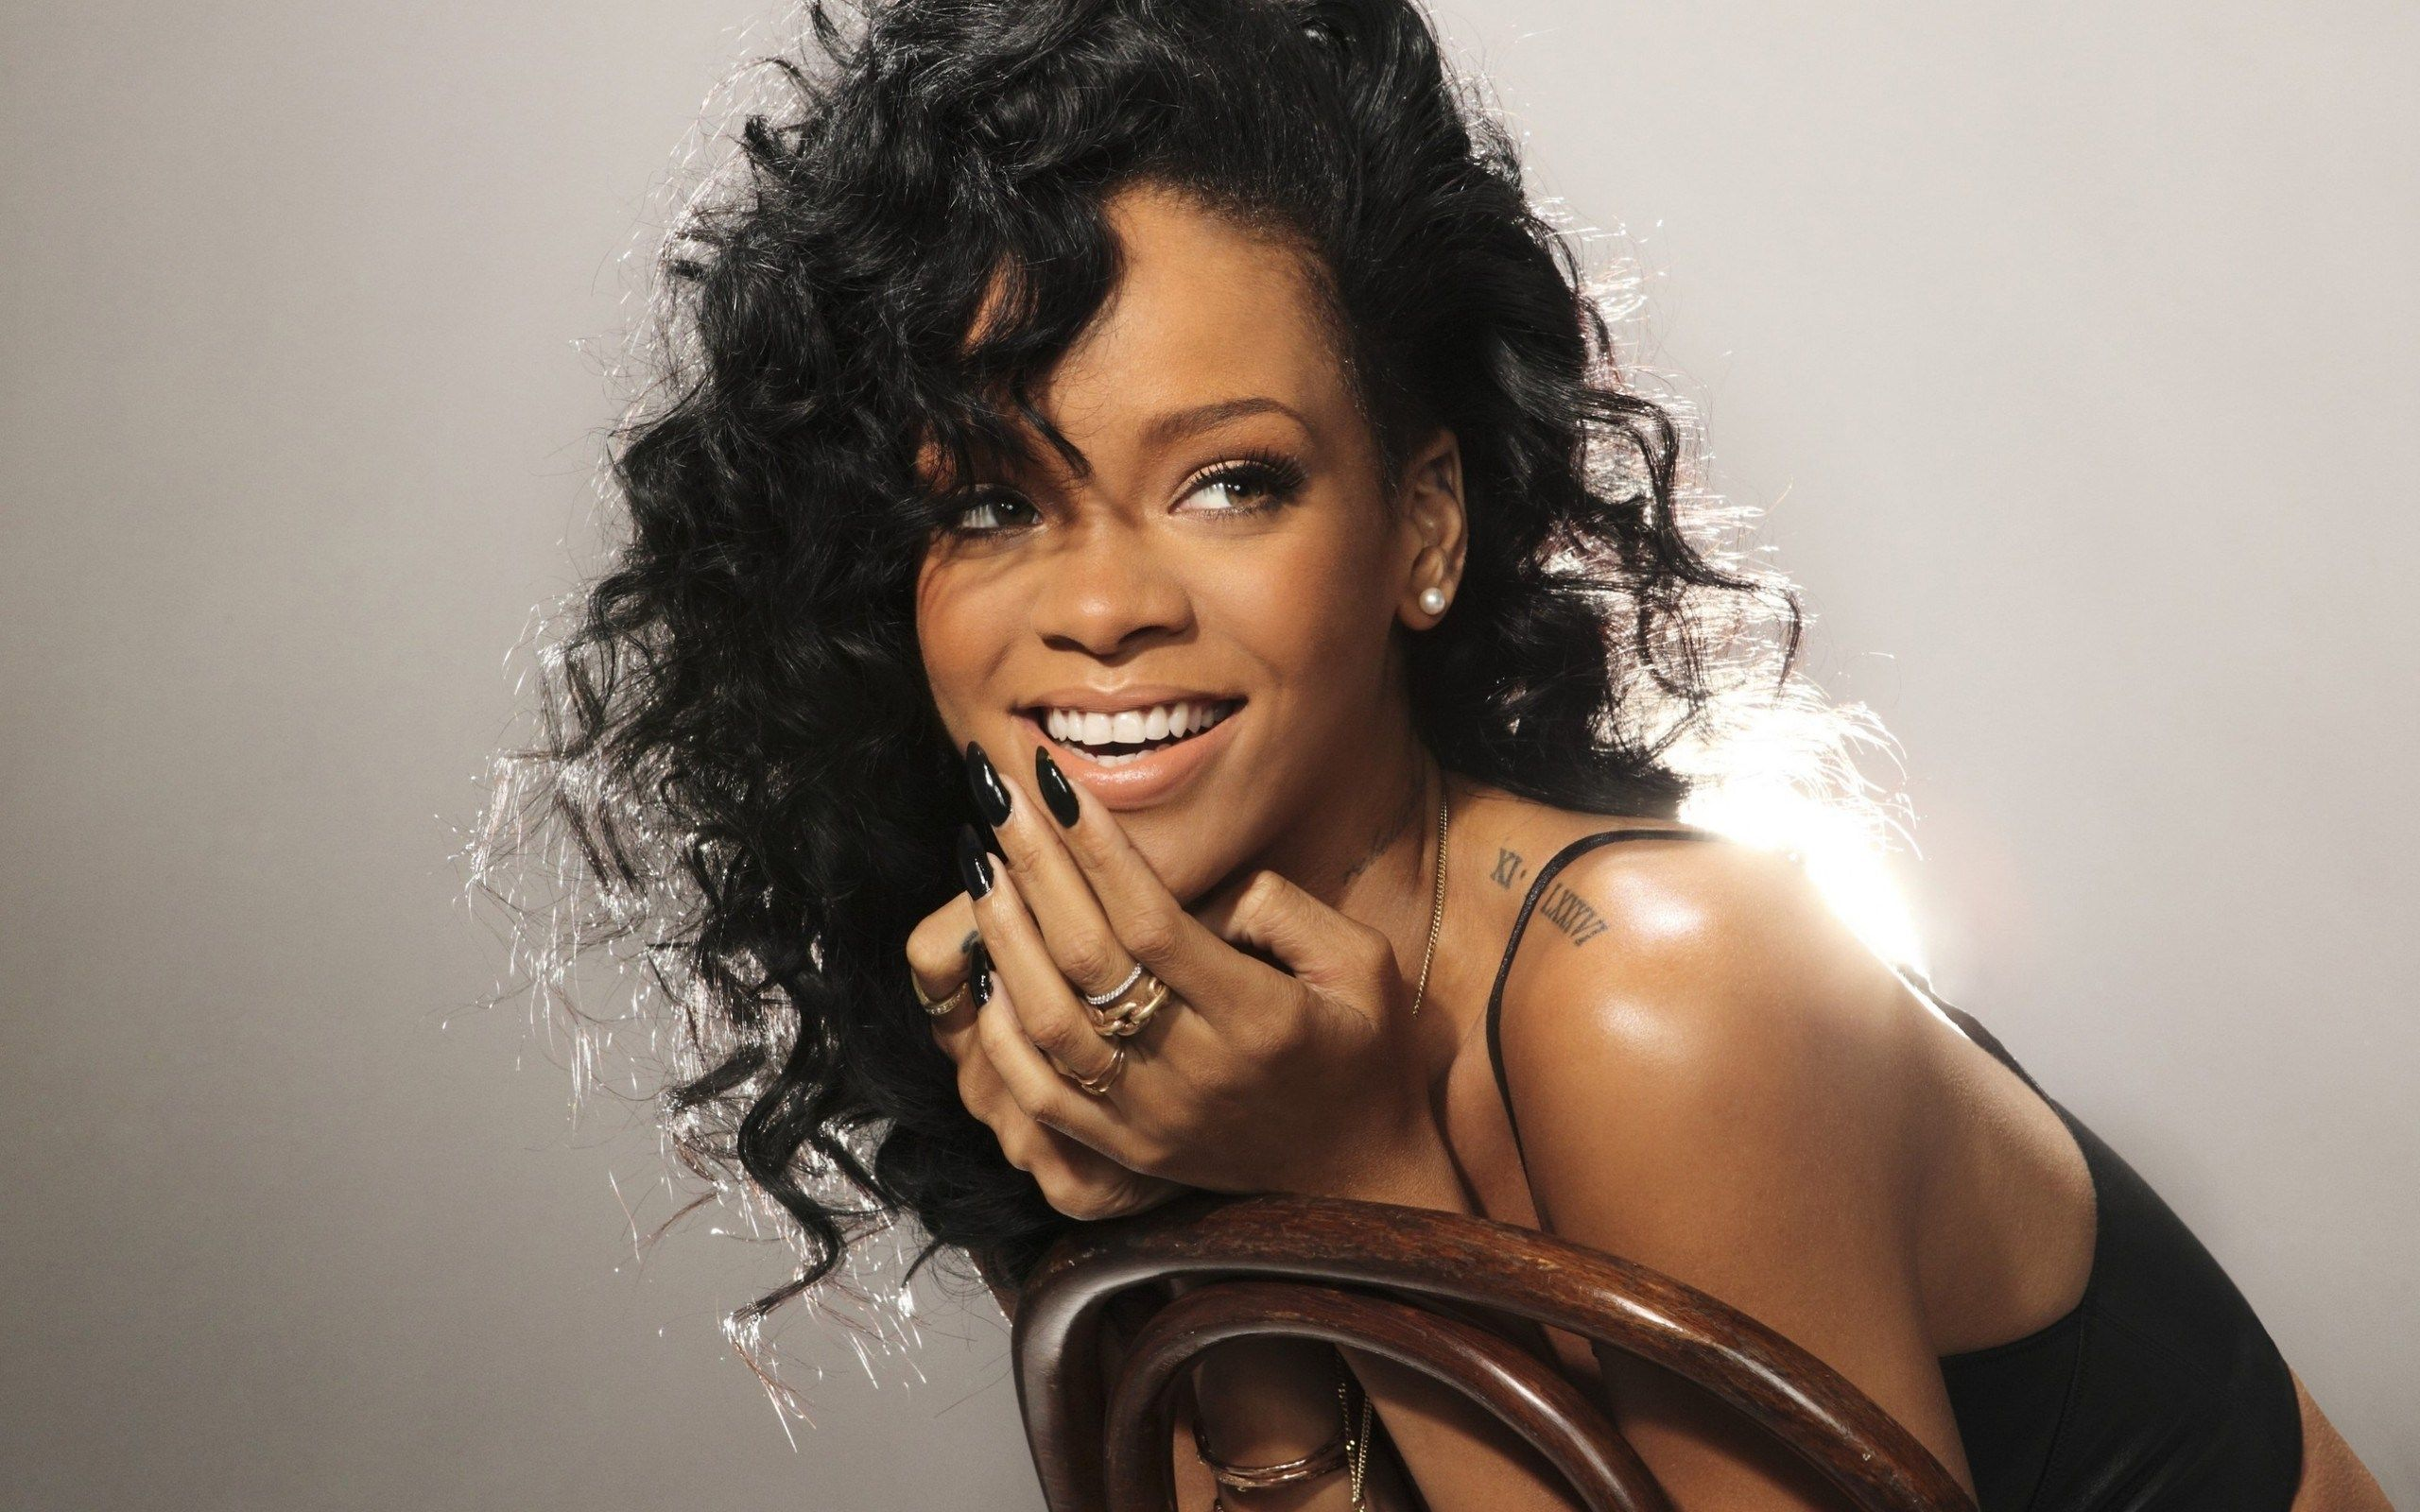 Rihanna Wallpapers HD Download Free Rihanna Wallpaper